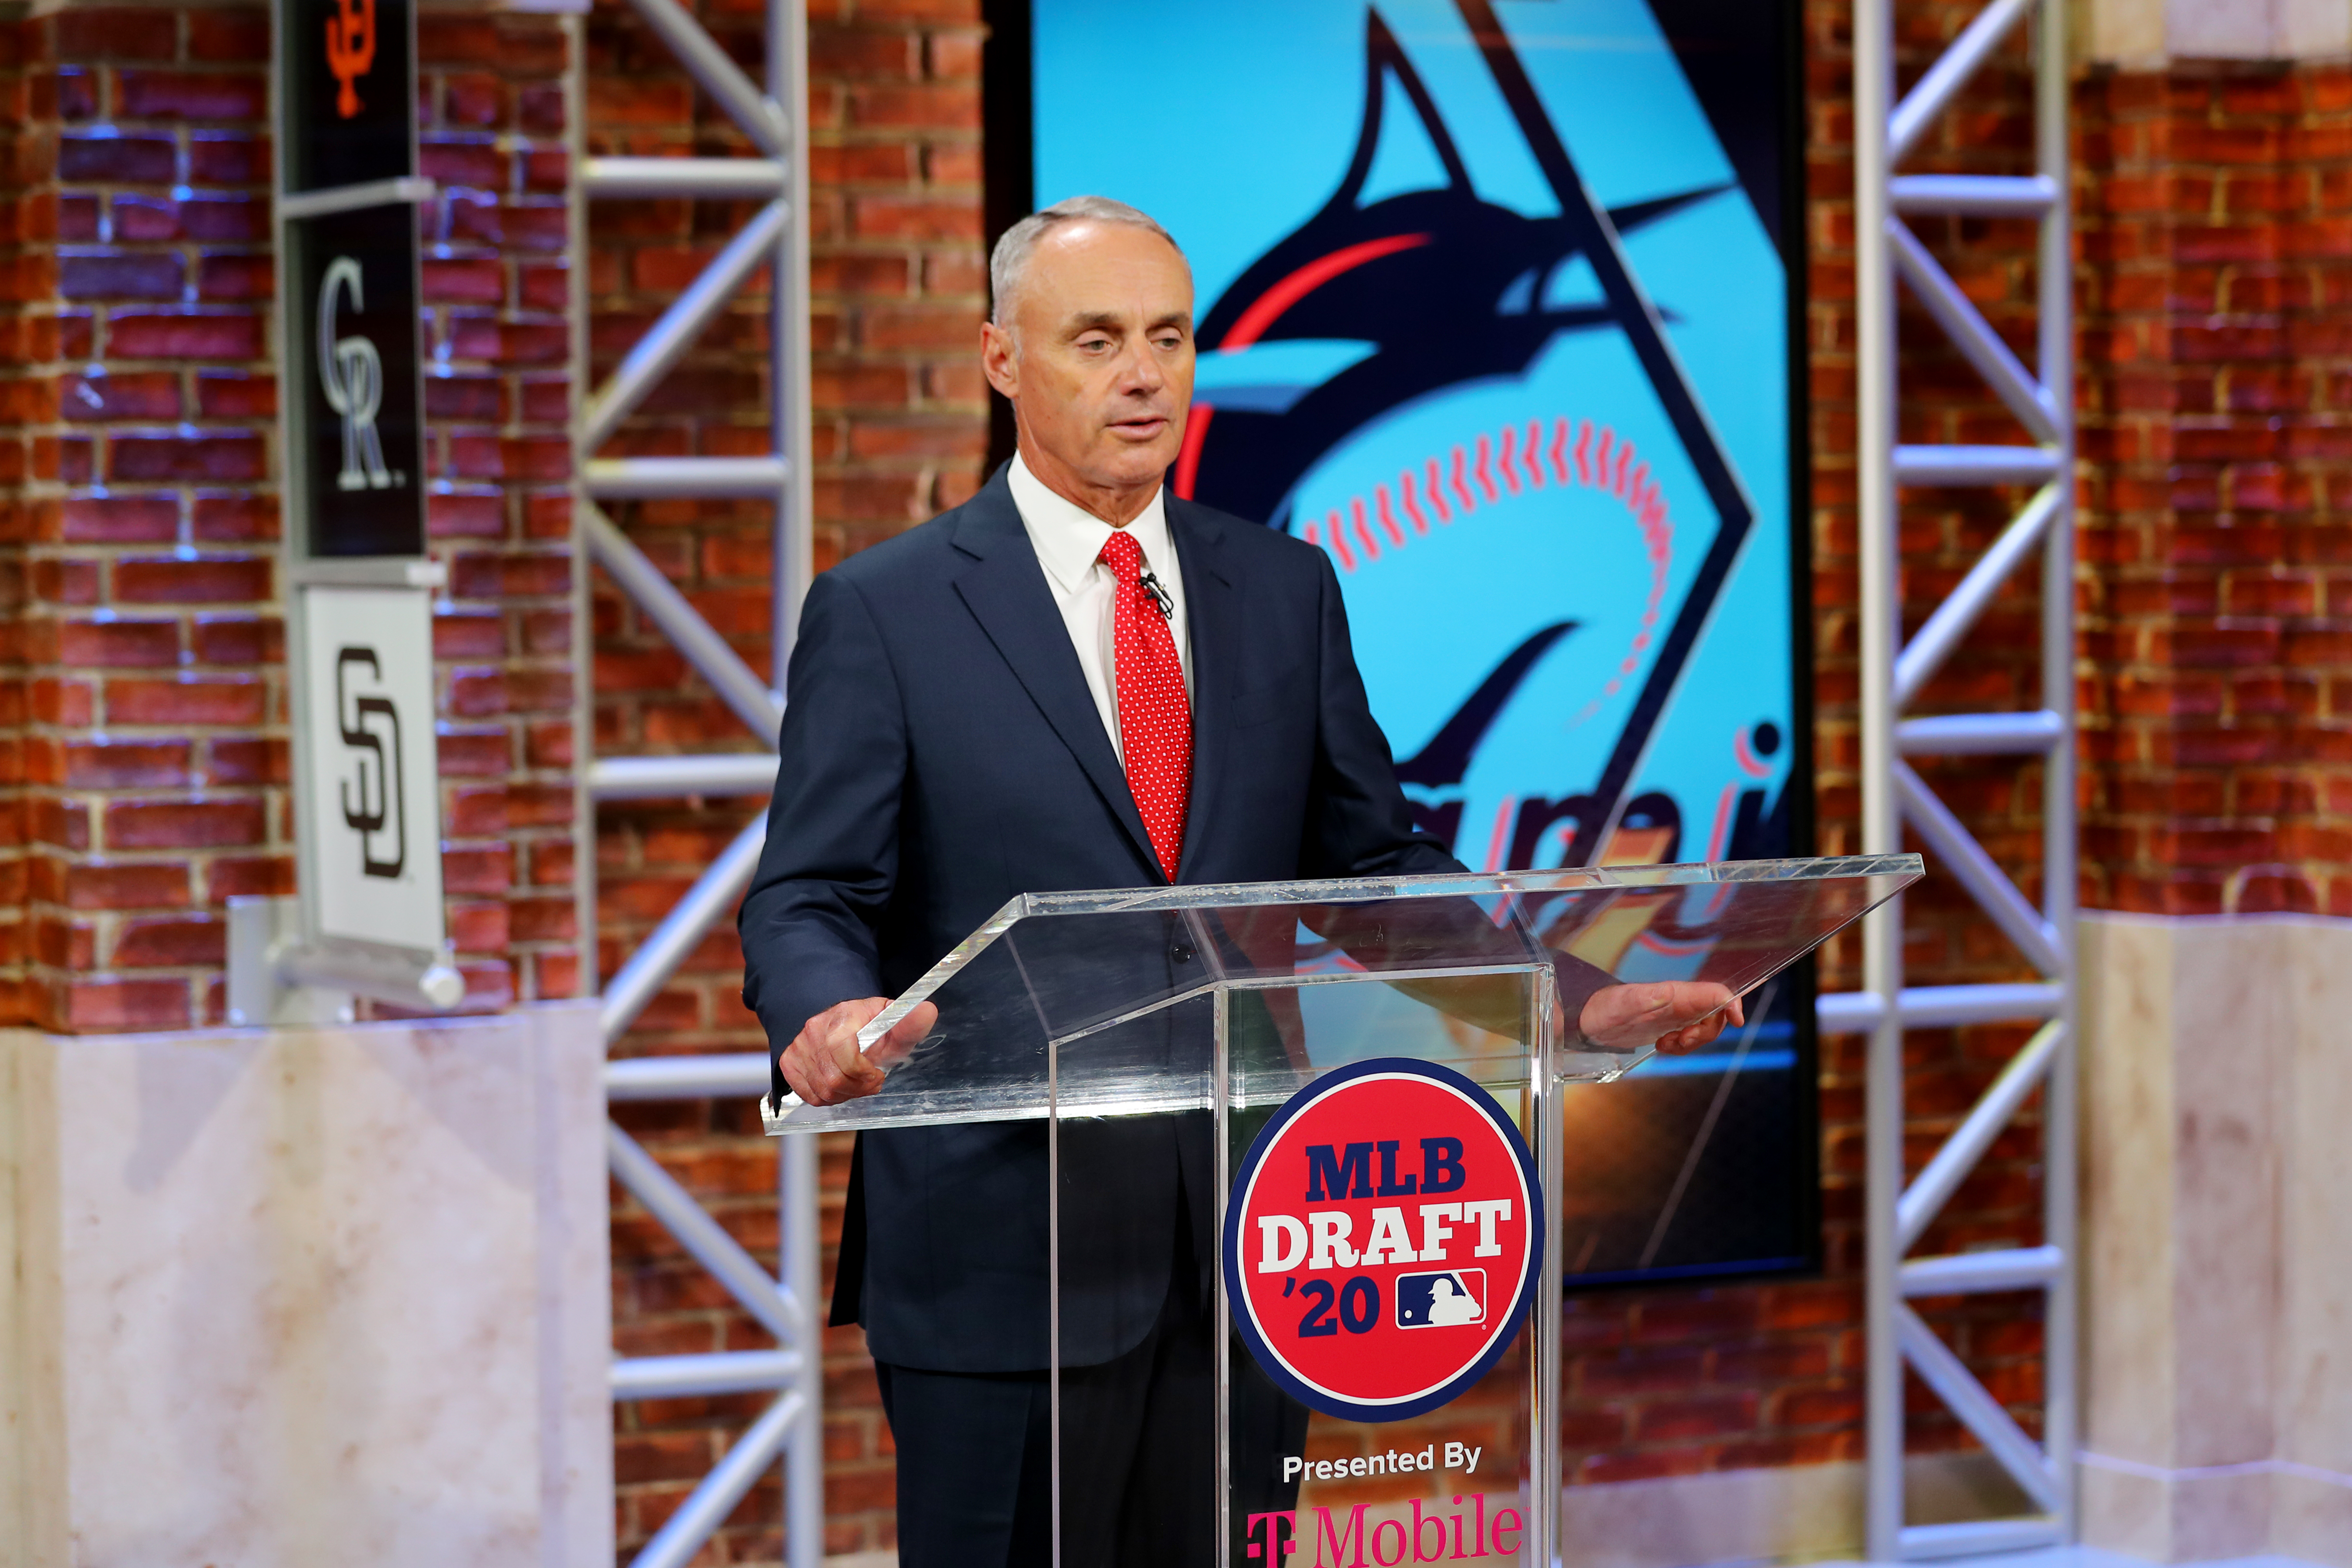 Major League Baseball Commissioner Robert D. Manfred Jr. announces the third pick in the 2020 MLB Draft is Max Meyer by the Miami Marlins during the 2020 Major League Baseball Draft